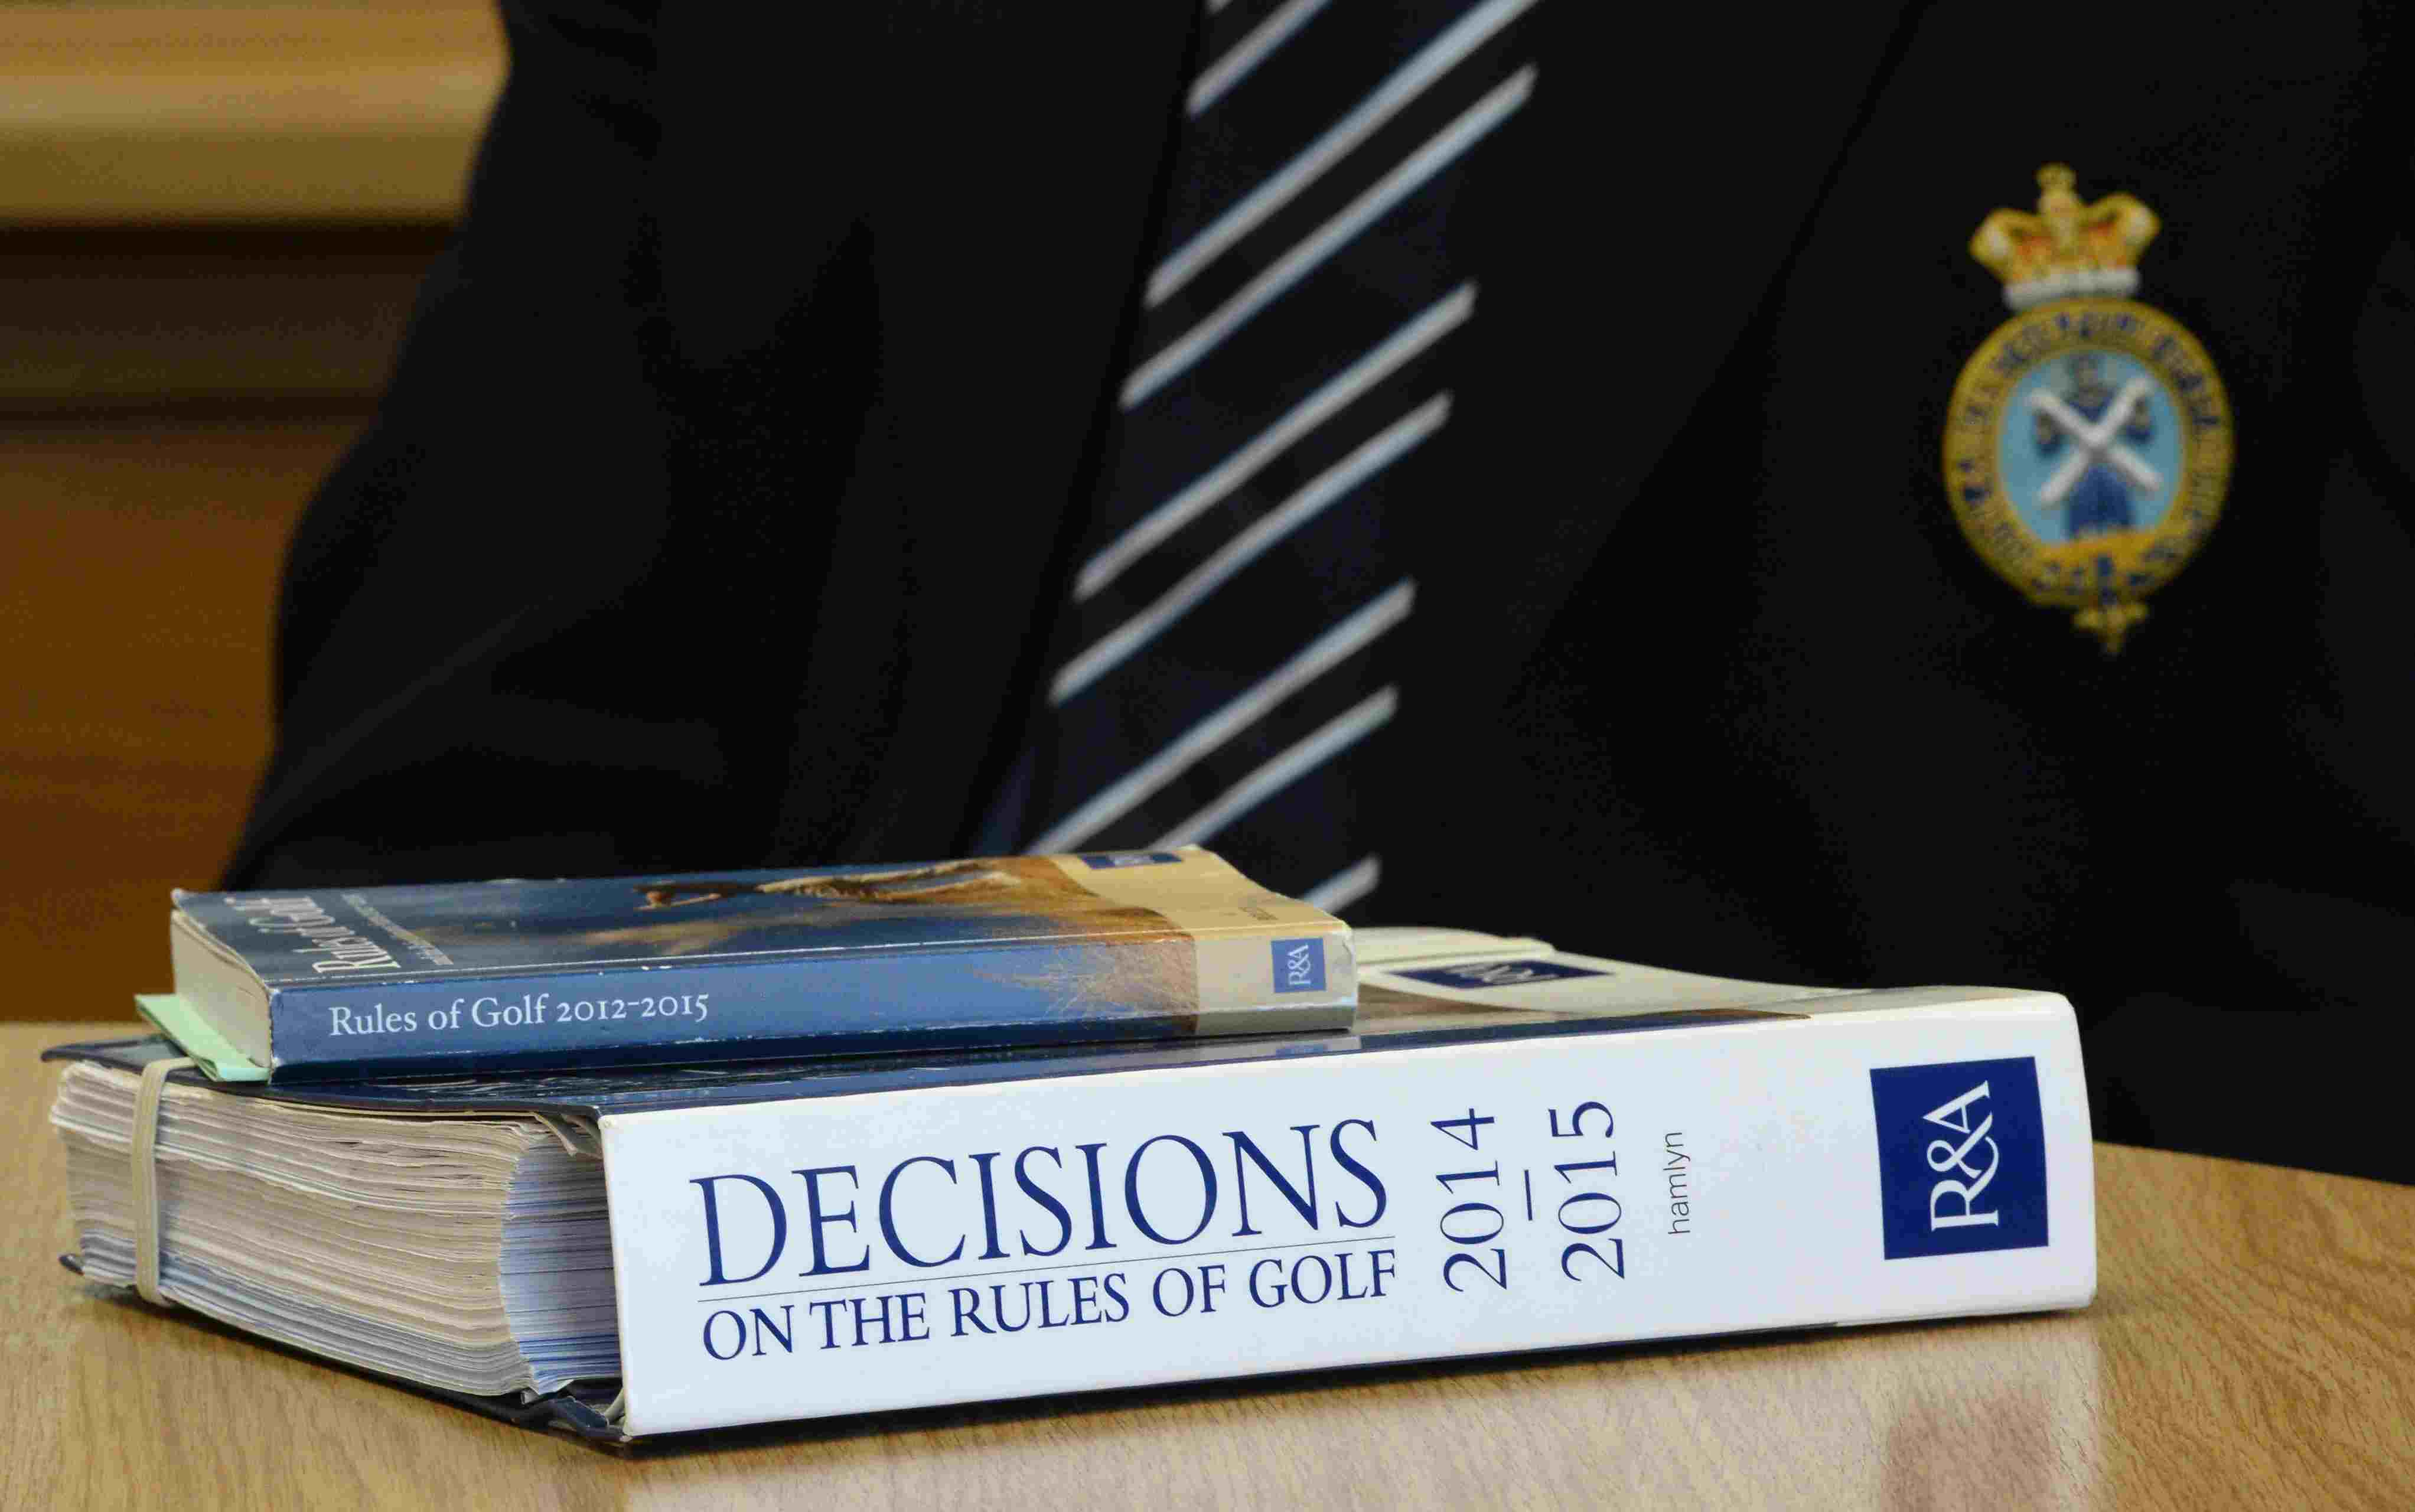 golf rules and decisions book